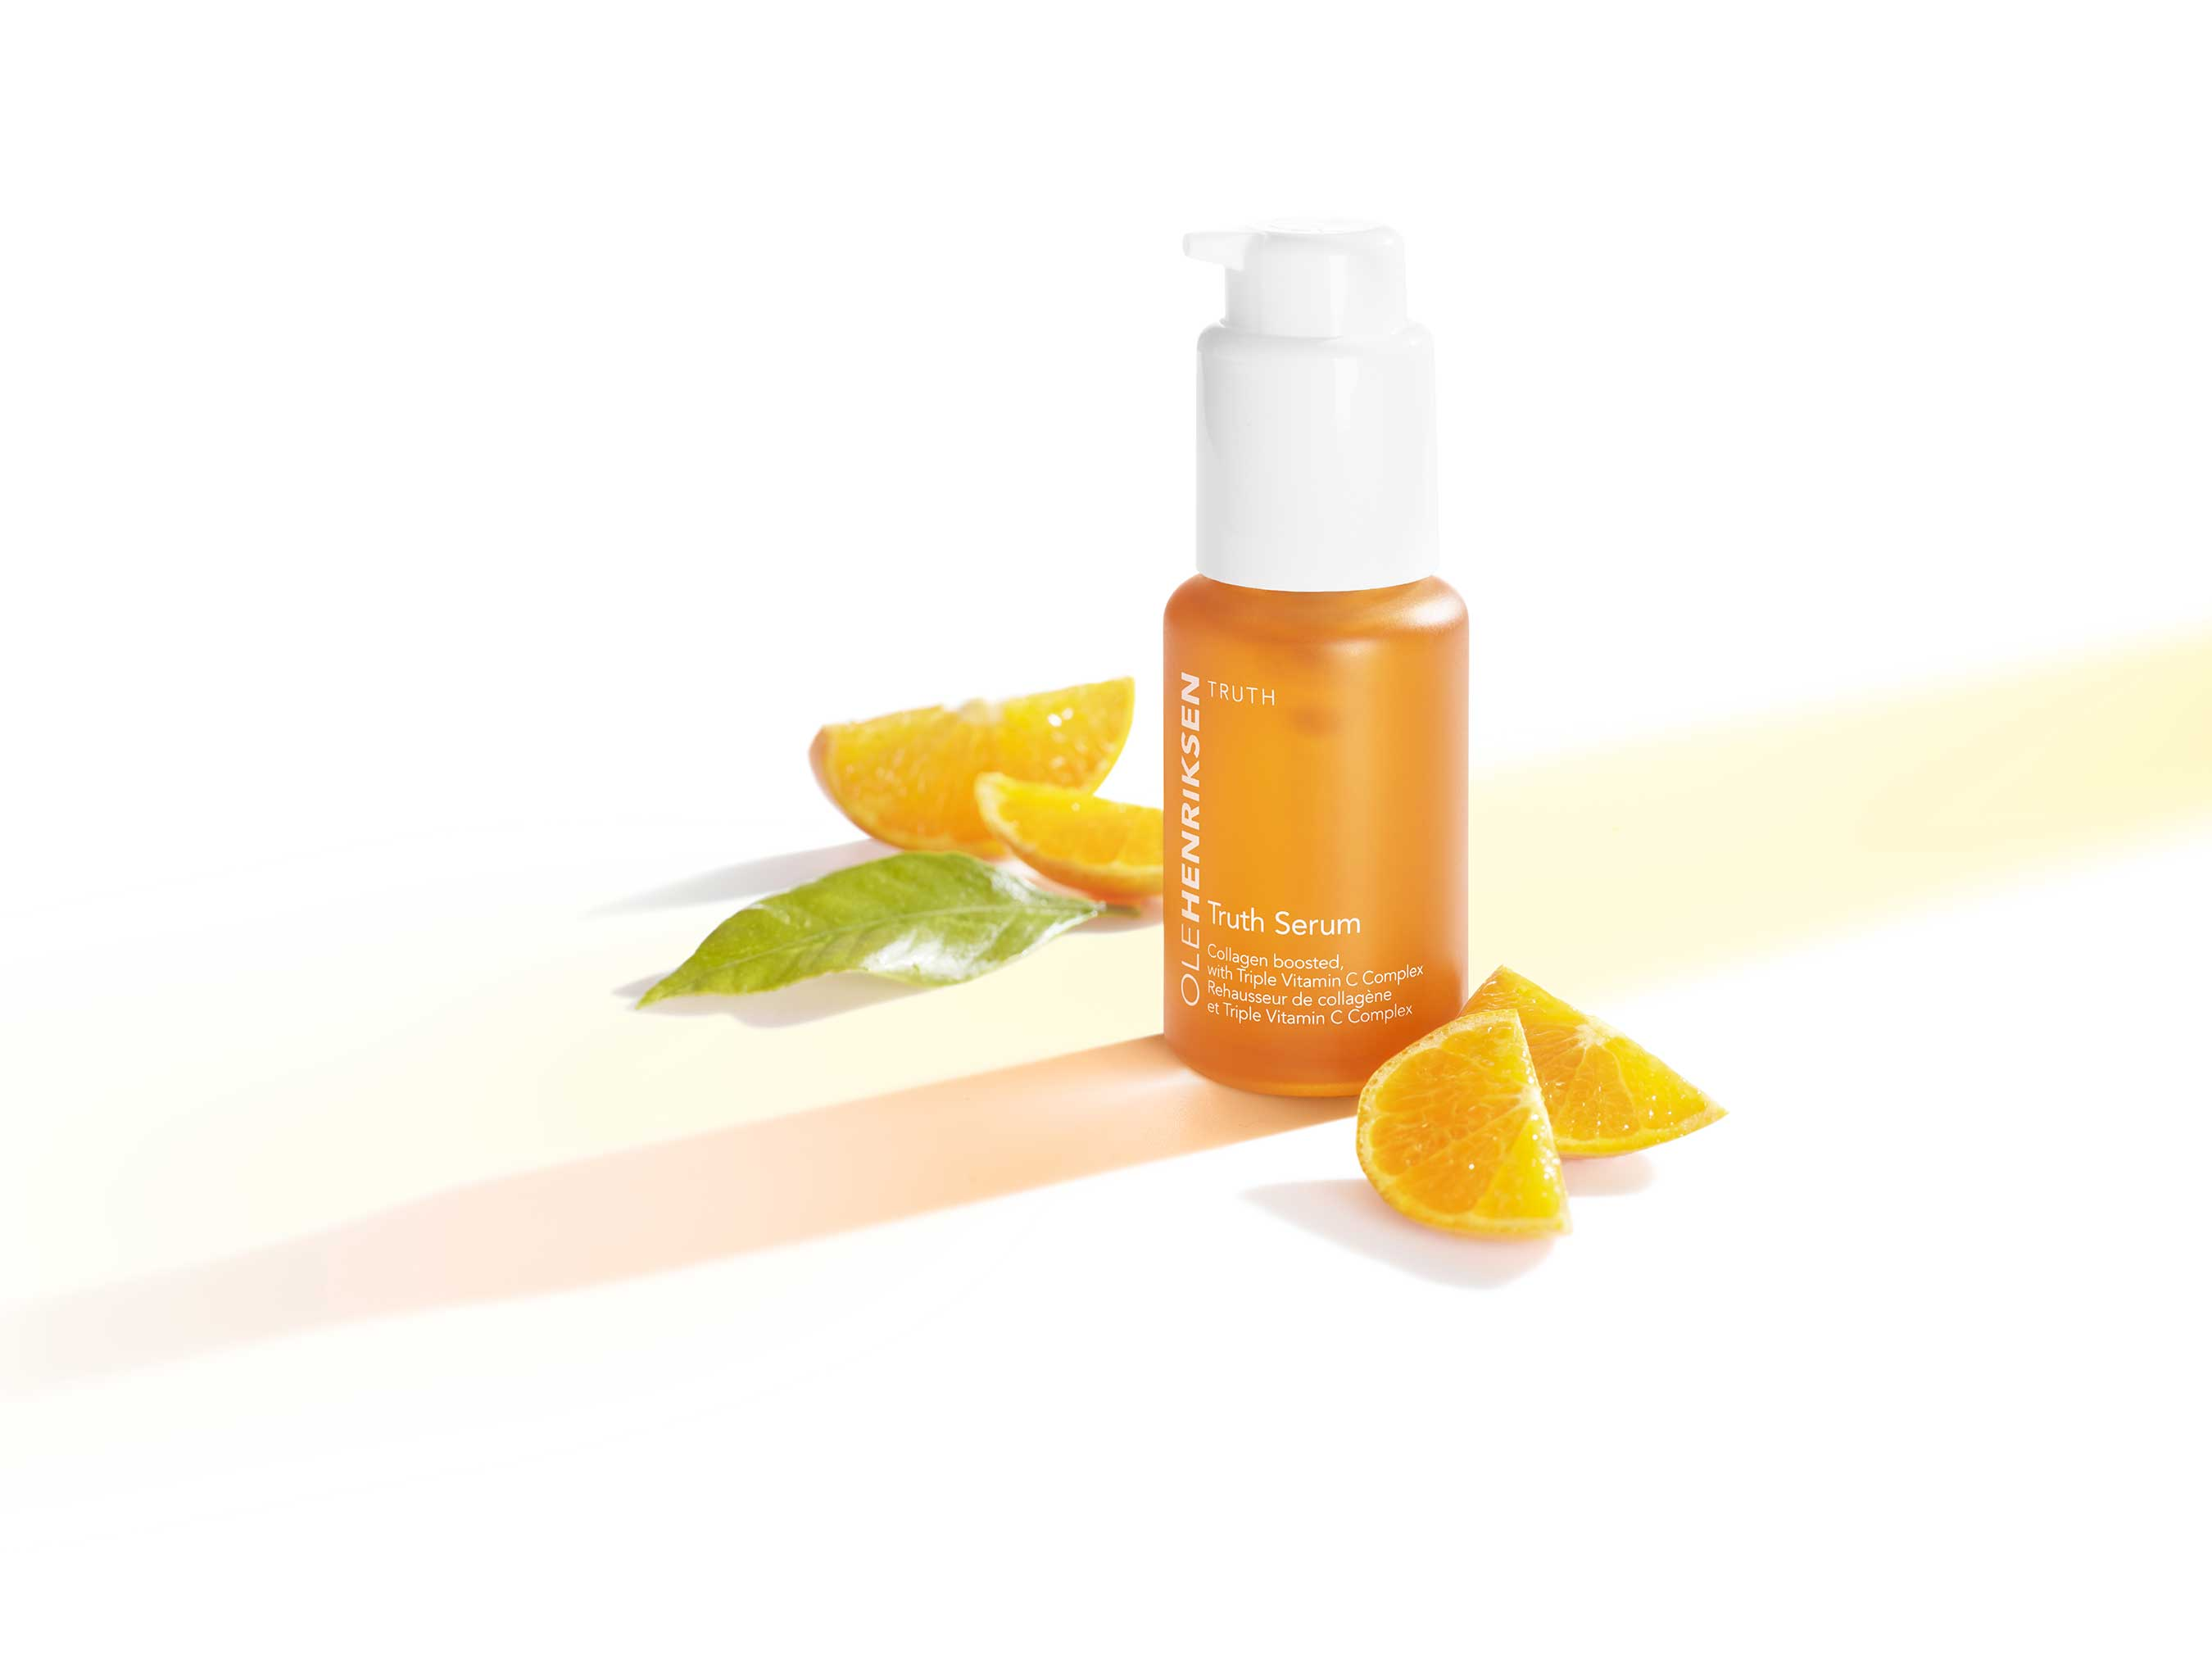 OleHenriksen Truth Collection